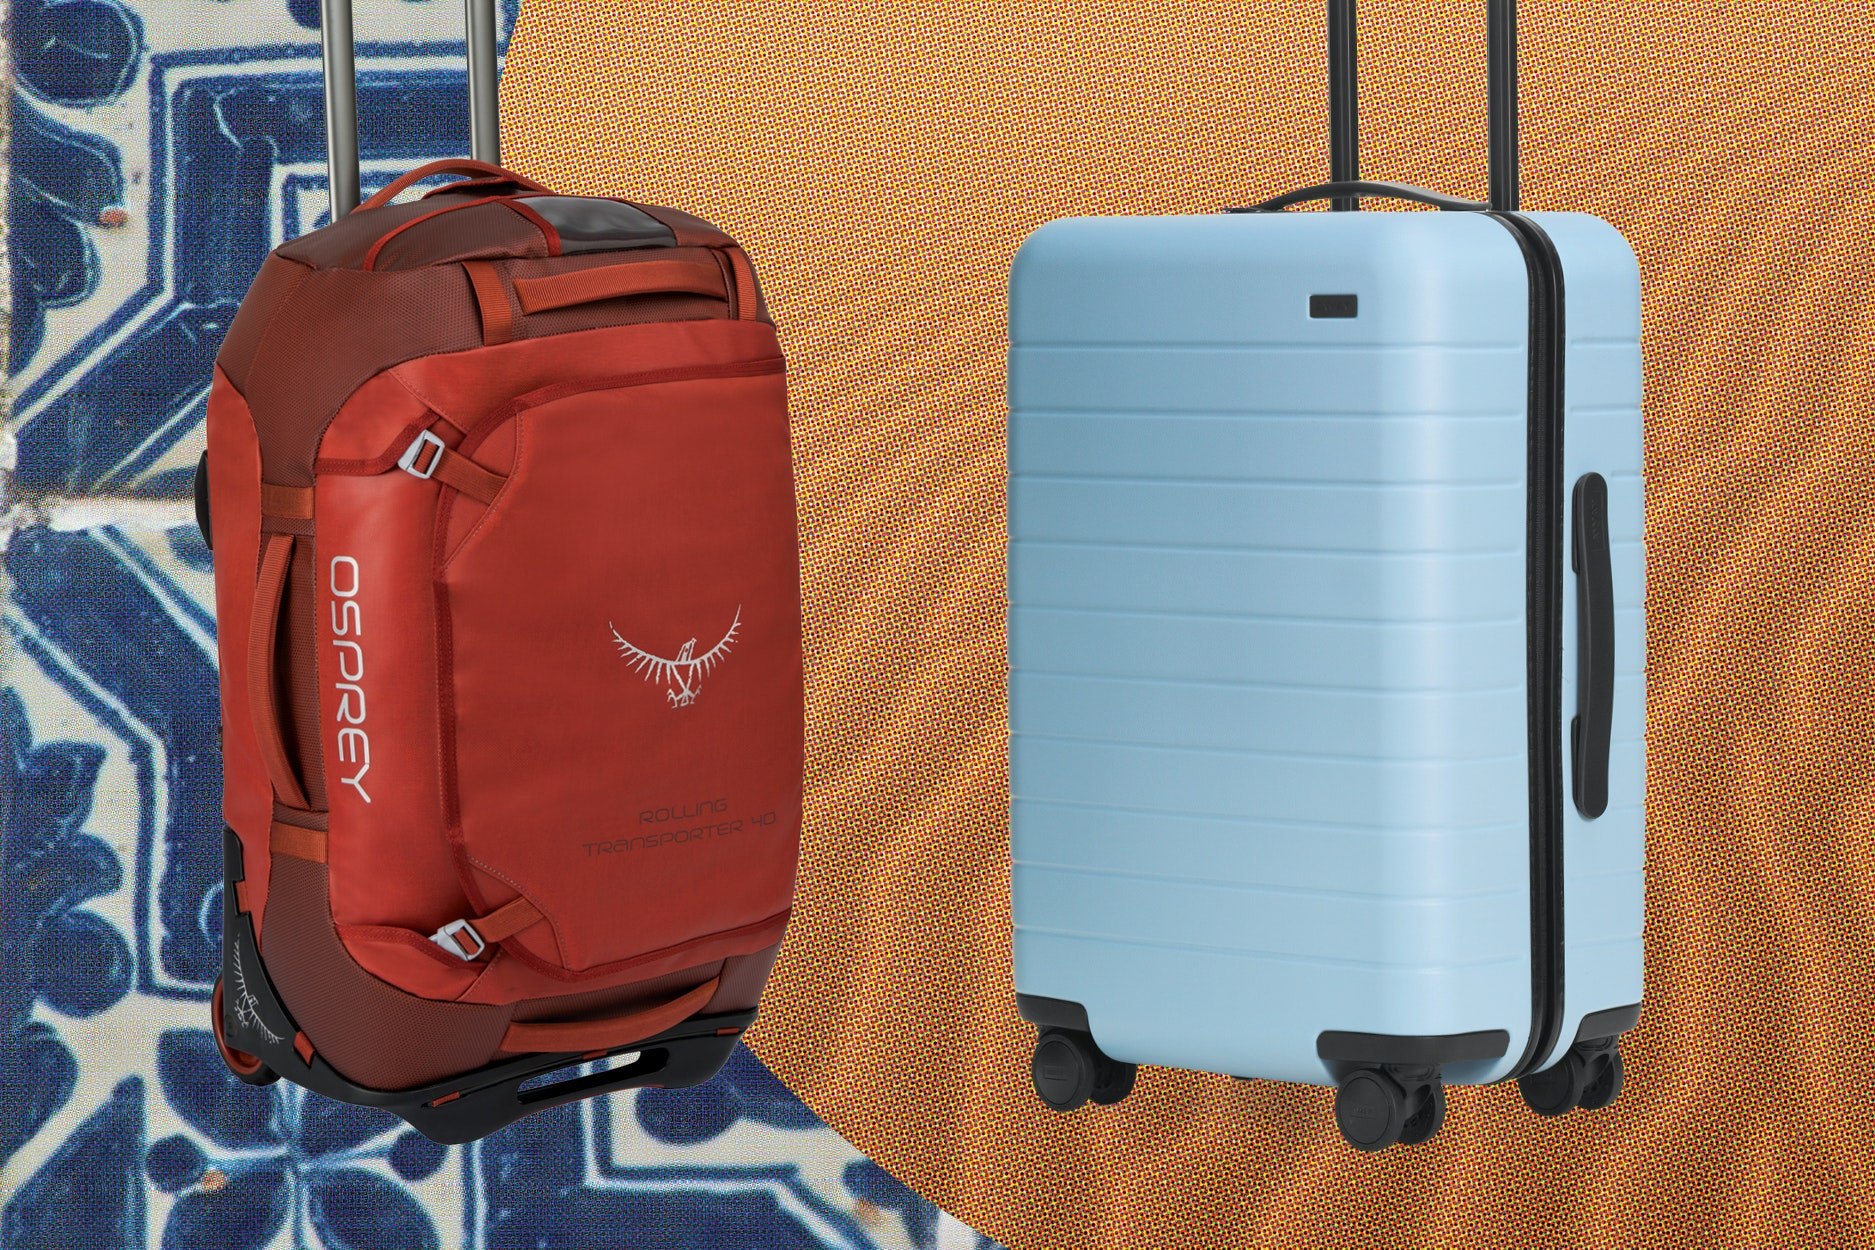 The Osprey Transporter Wheeled Duffel, left, and Away's The Bigger Carry-On, right